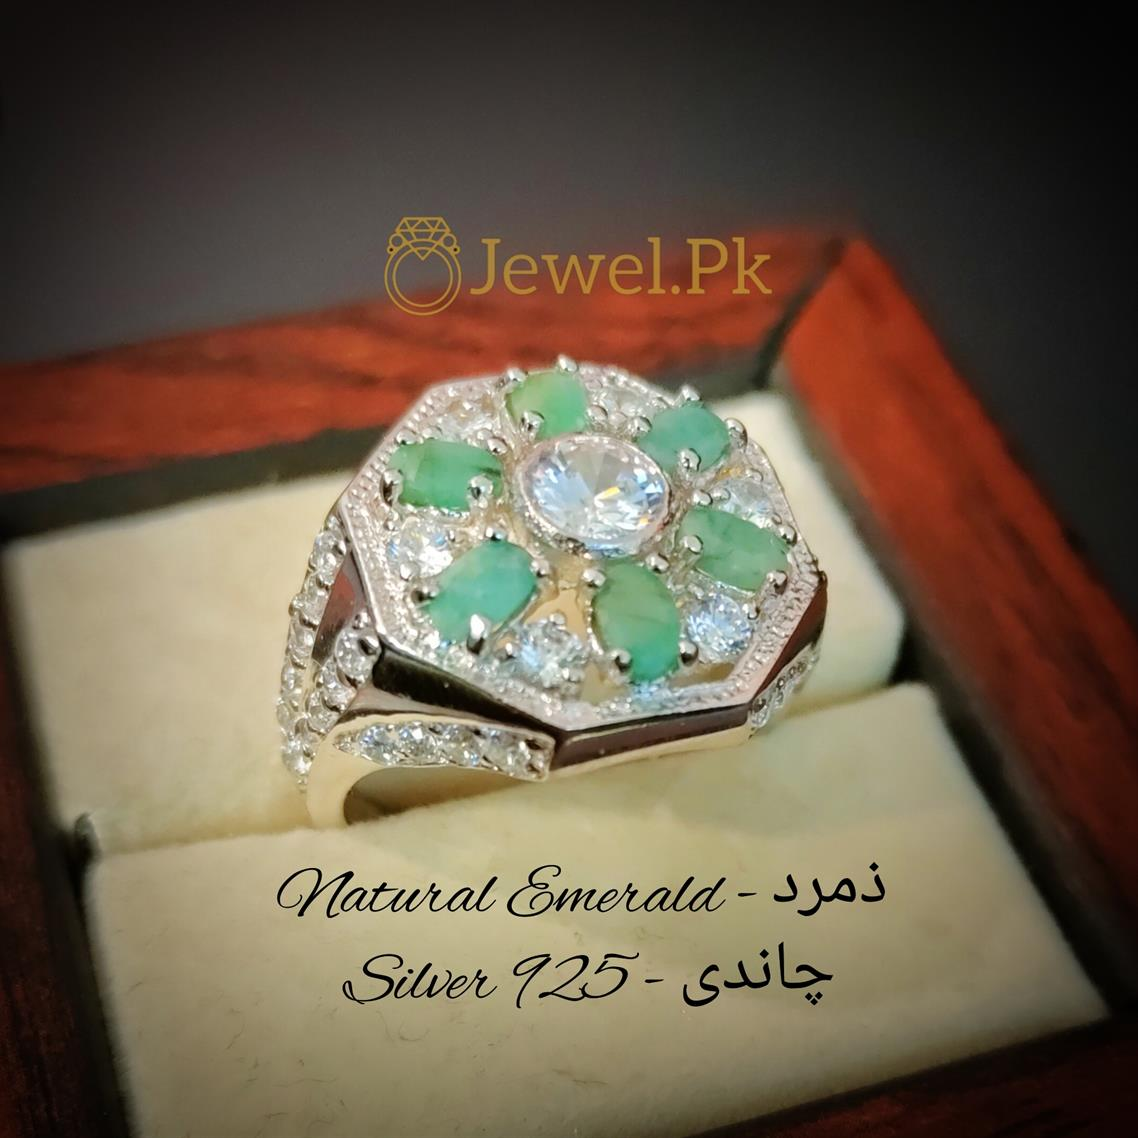 6 Pieces Emerald Ring Unisex Natural Emerald Rings in Pakistan Zamurd Rings 2 natural gemstones pakistan + 925 silver jewelry online